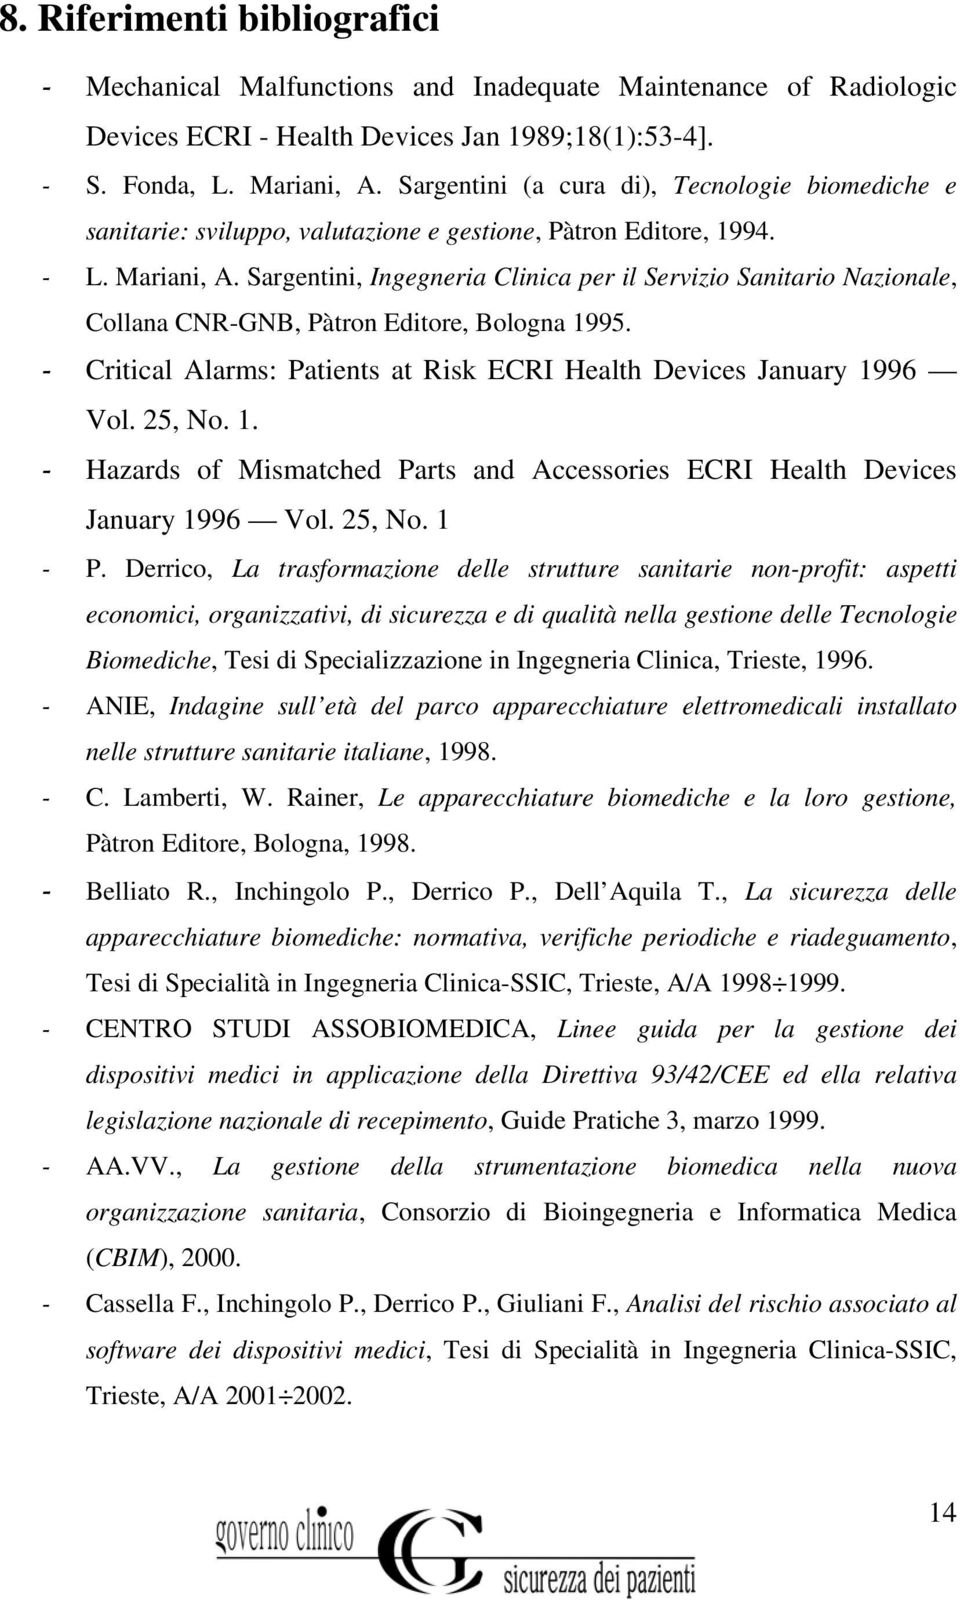 Sargentini, Ingegneria Clinica per il Servizio Sanitario Nazionale, Collana CNR-GNB, Pàtron Editore, Bologna 1995. - Critical Alarms: Patients at Risk ECRI Health Devices January 1996 Vol. 25, No. 1. - Hazards of Mismatched Parts and Accessories ECRI Health Devices January 1996 Vol.